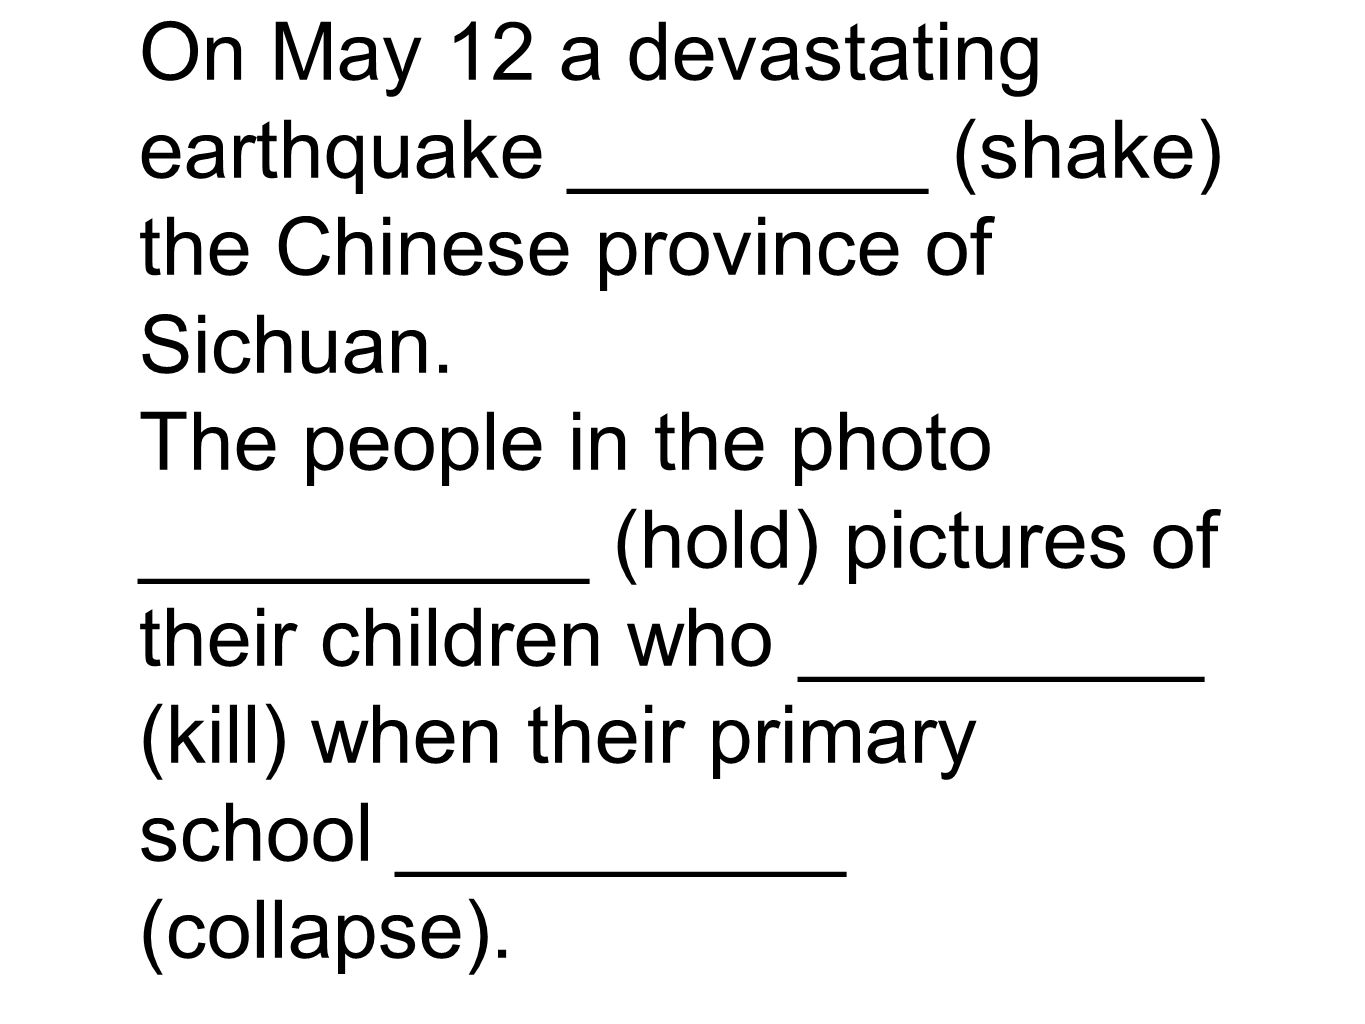 On May 12 a devastating earthquake ________ (shake) the Chinese province of Sichuan. The people in the photo __________ (hold) pictures of their child